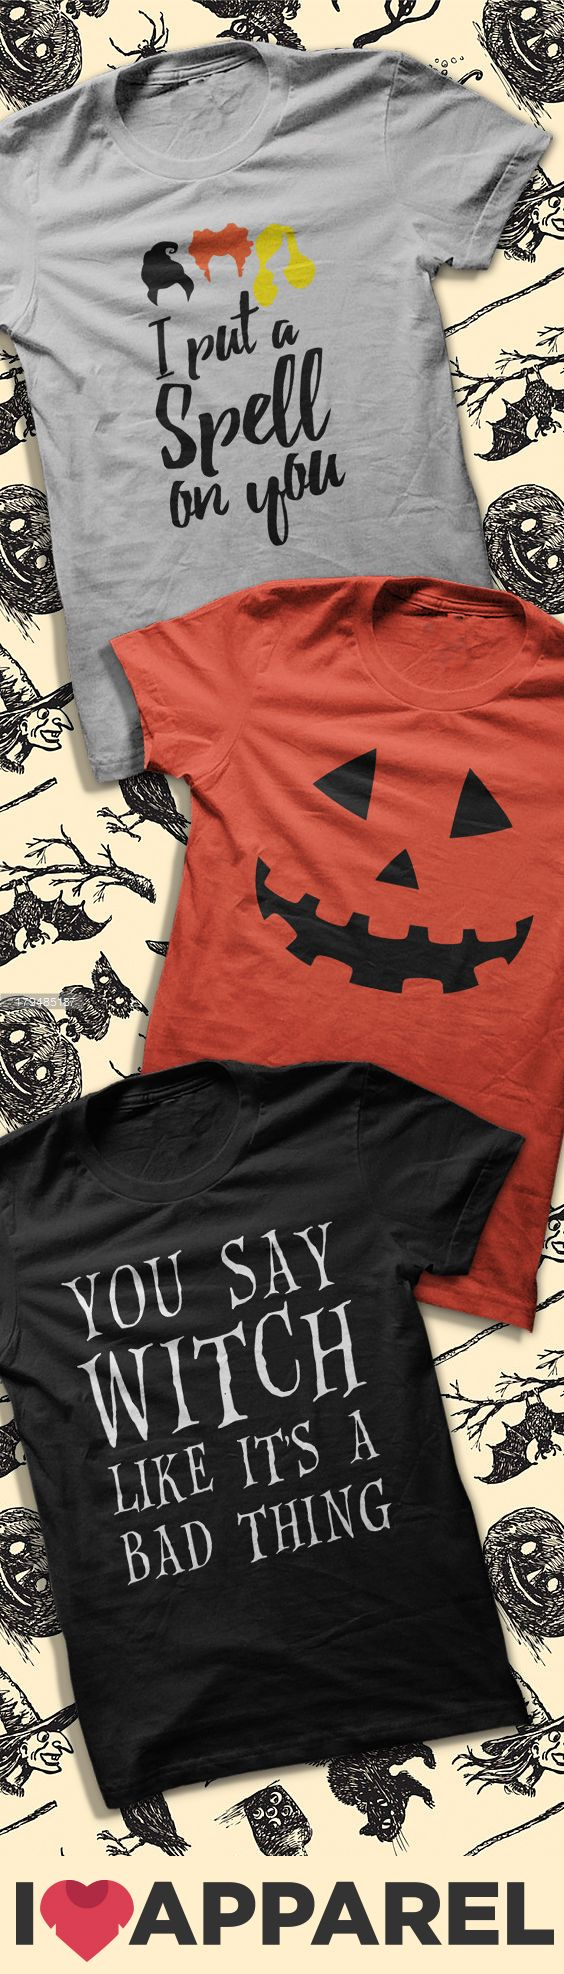 Buy Any 2 Items And Get FREE US Shipping! Check out our huge selection of halloween shirts!